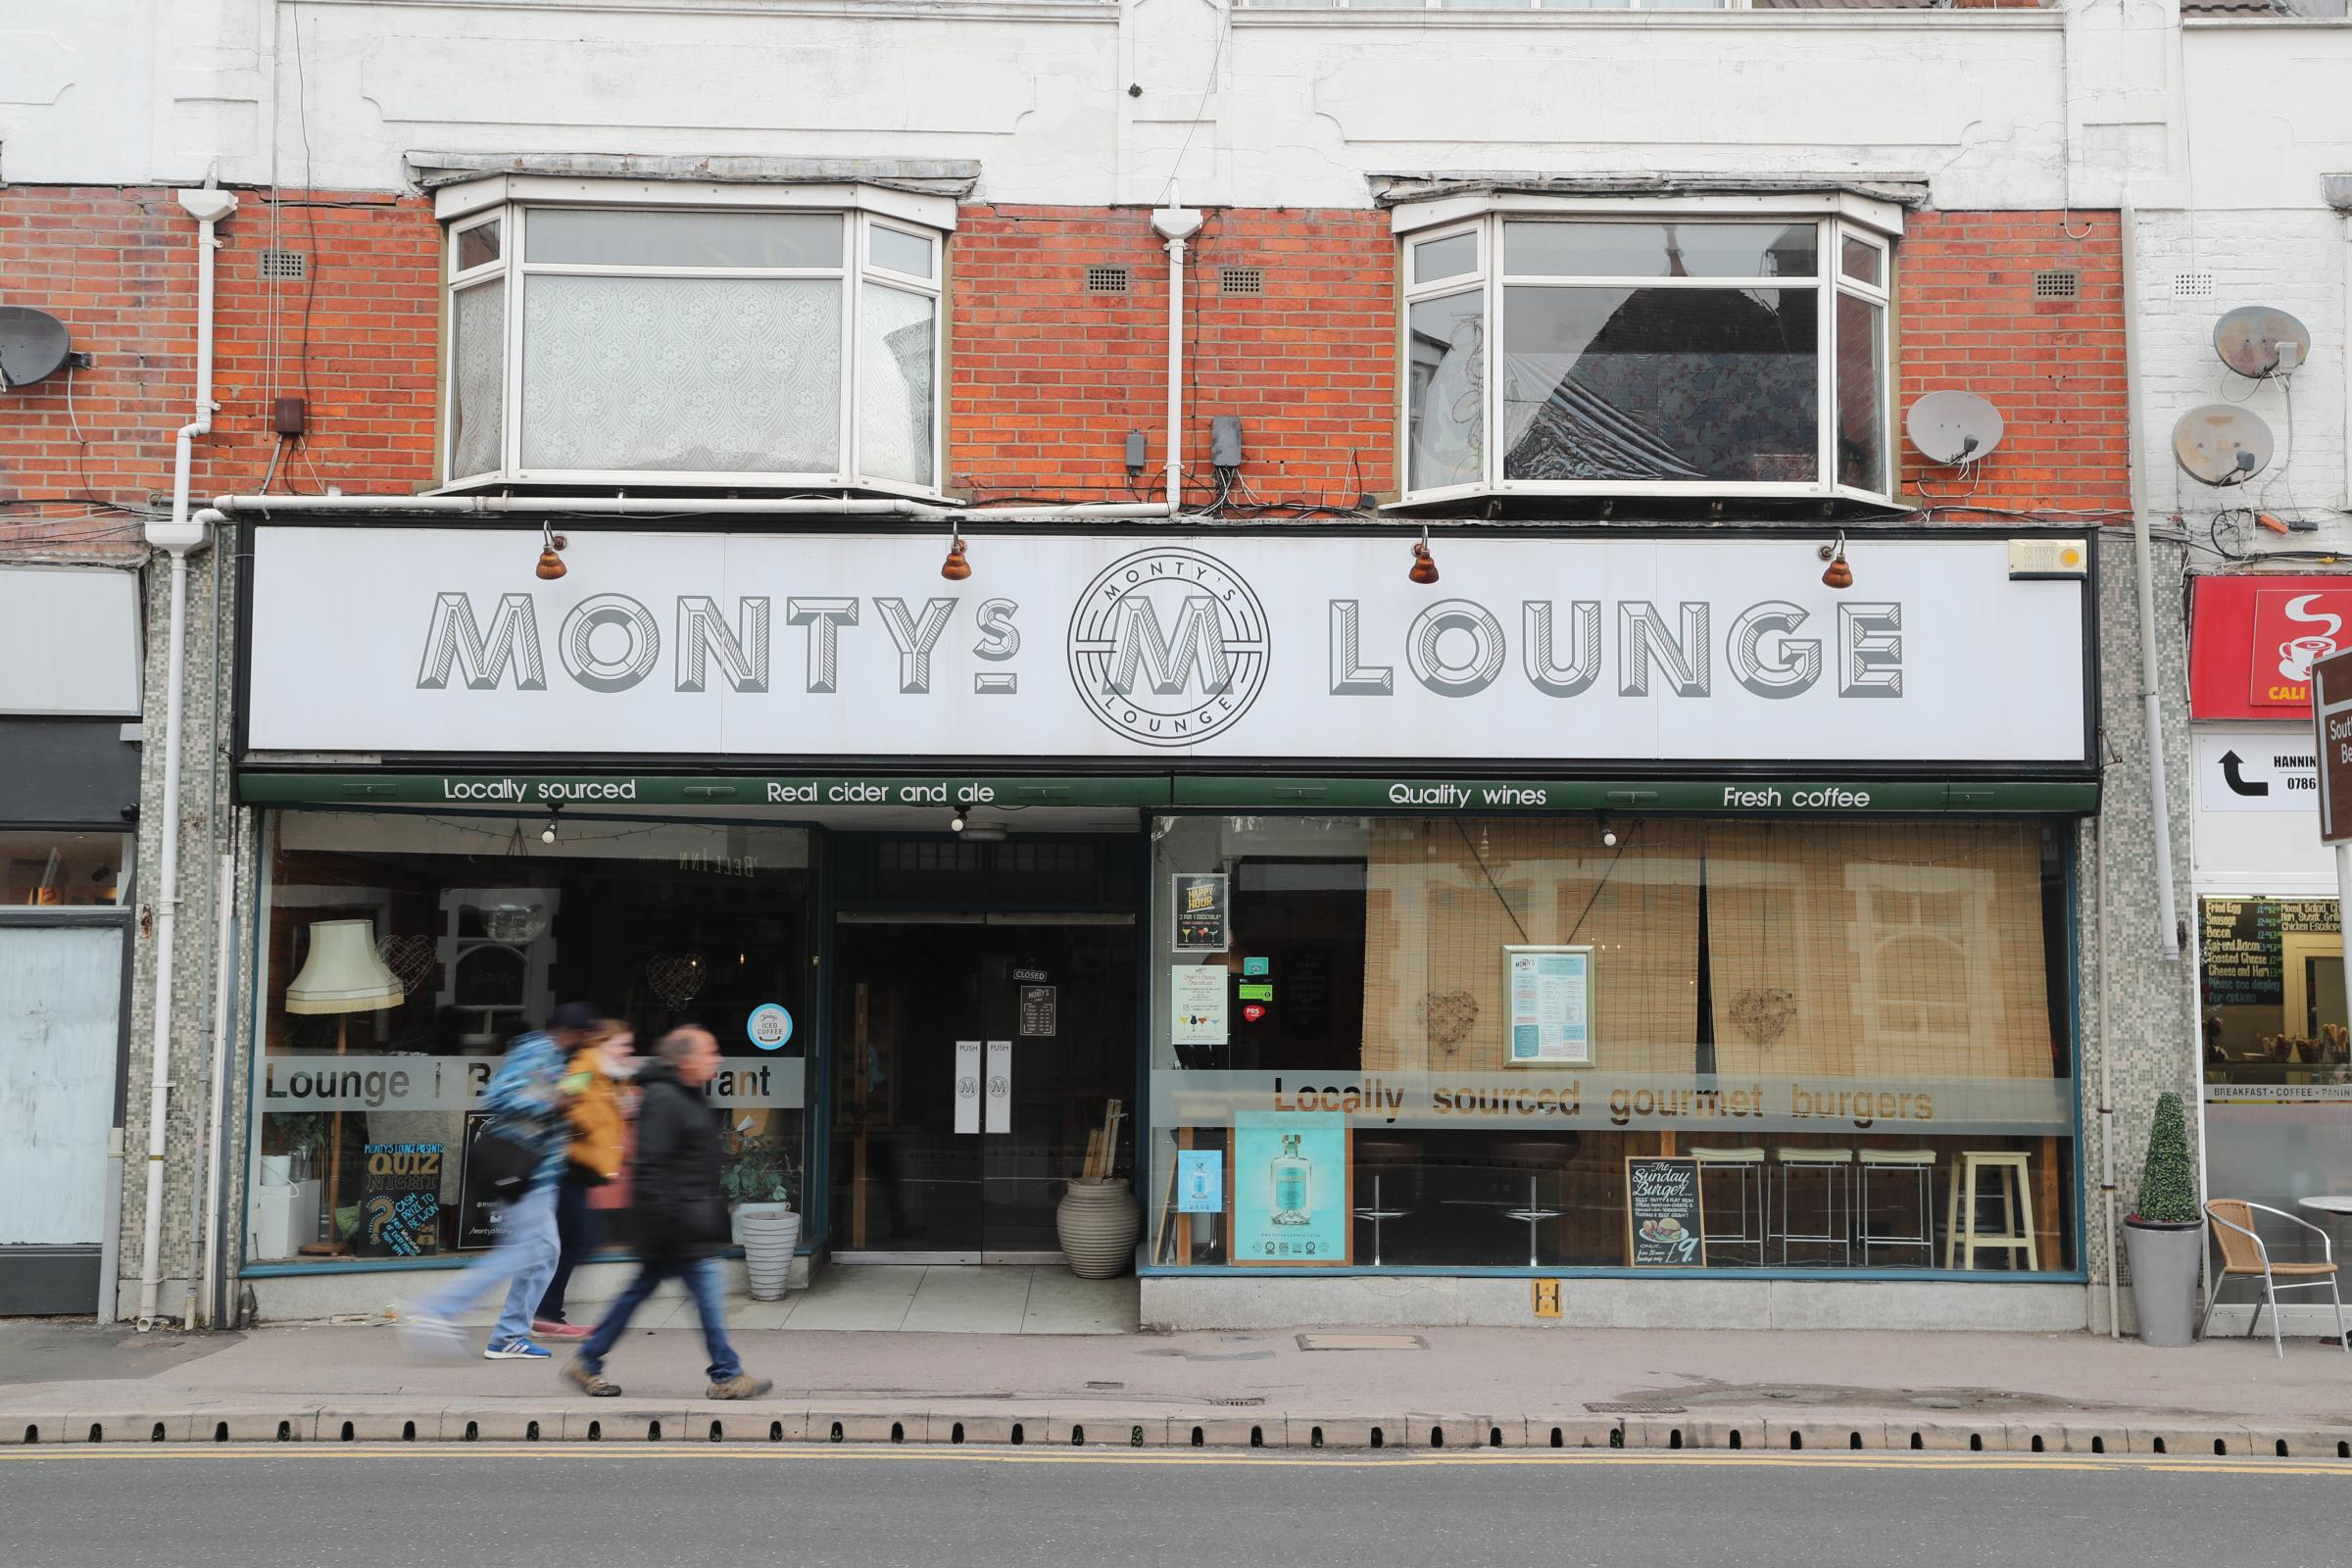 Monty's Lounge at Christchurch Road in Pokesdown